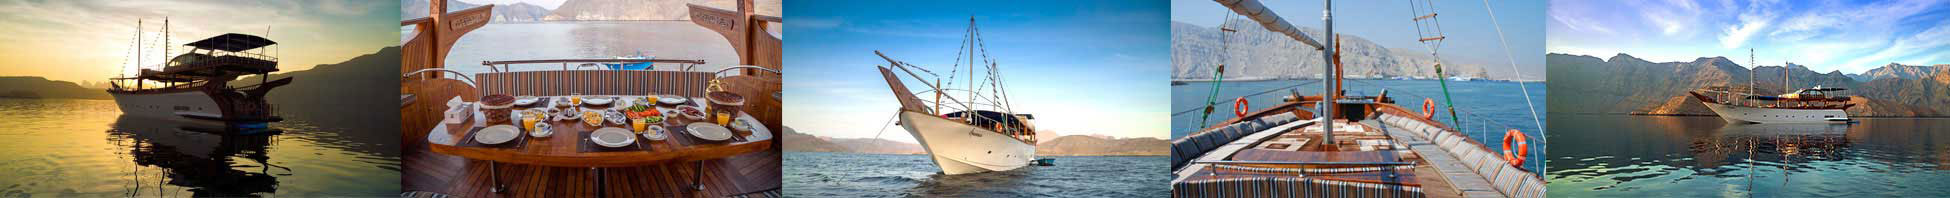 Musandam Day Cruise to Khor Sham